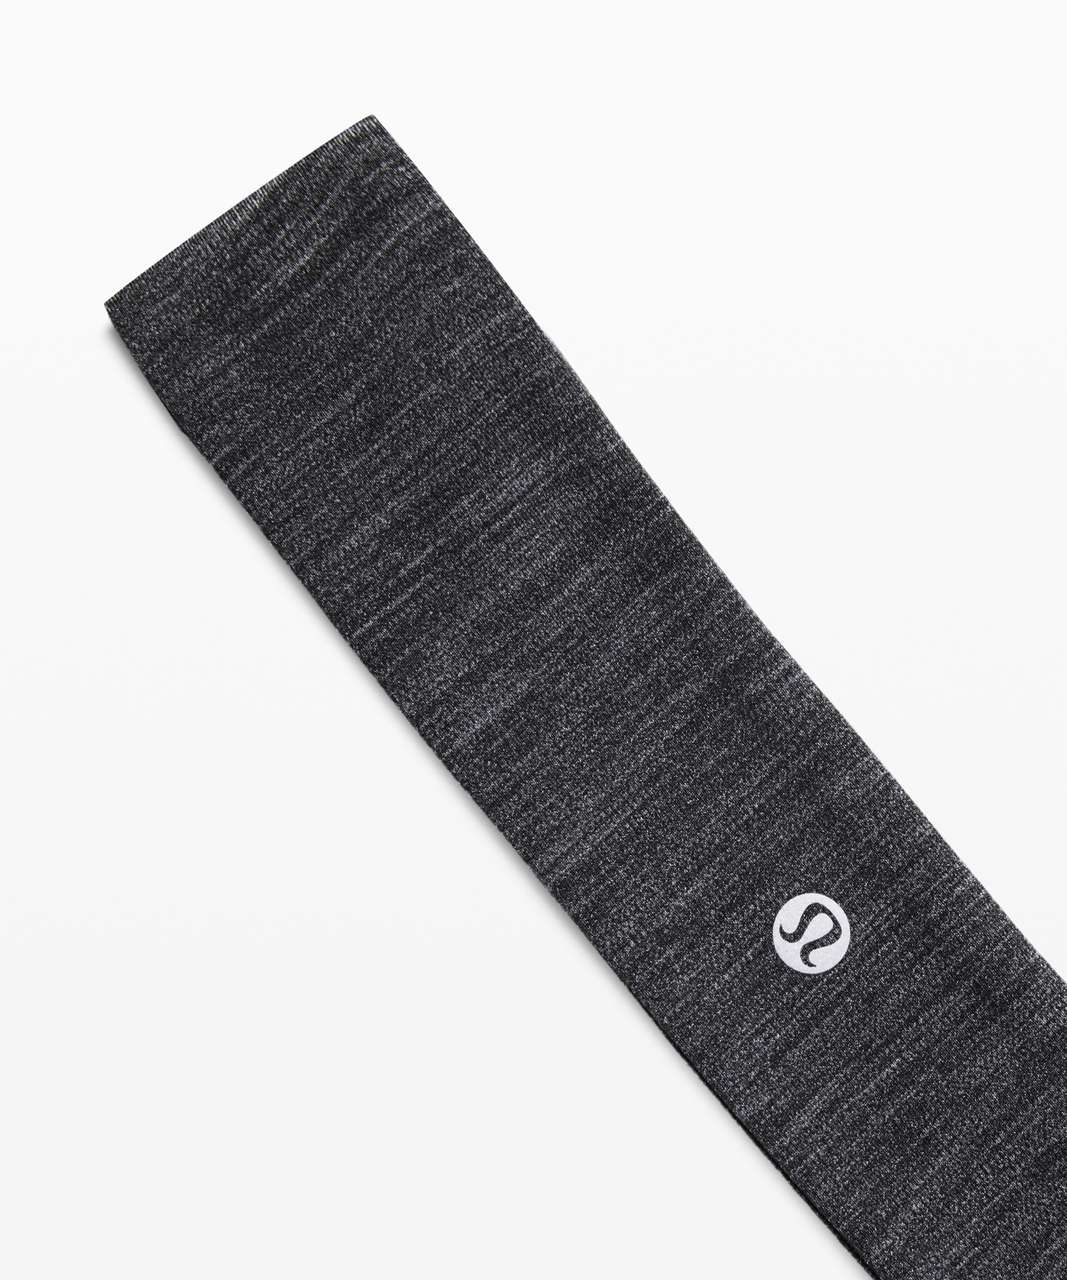 Lululemon Fly Away Tamer Headband - Heathered Black